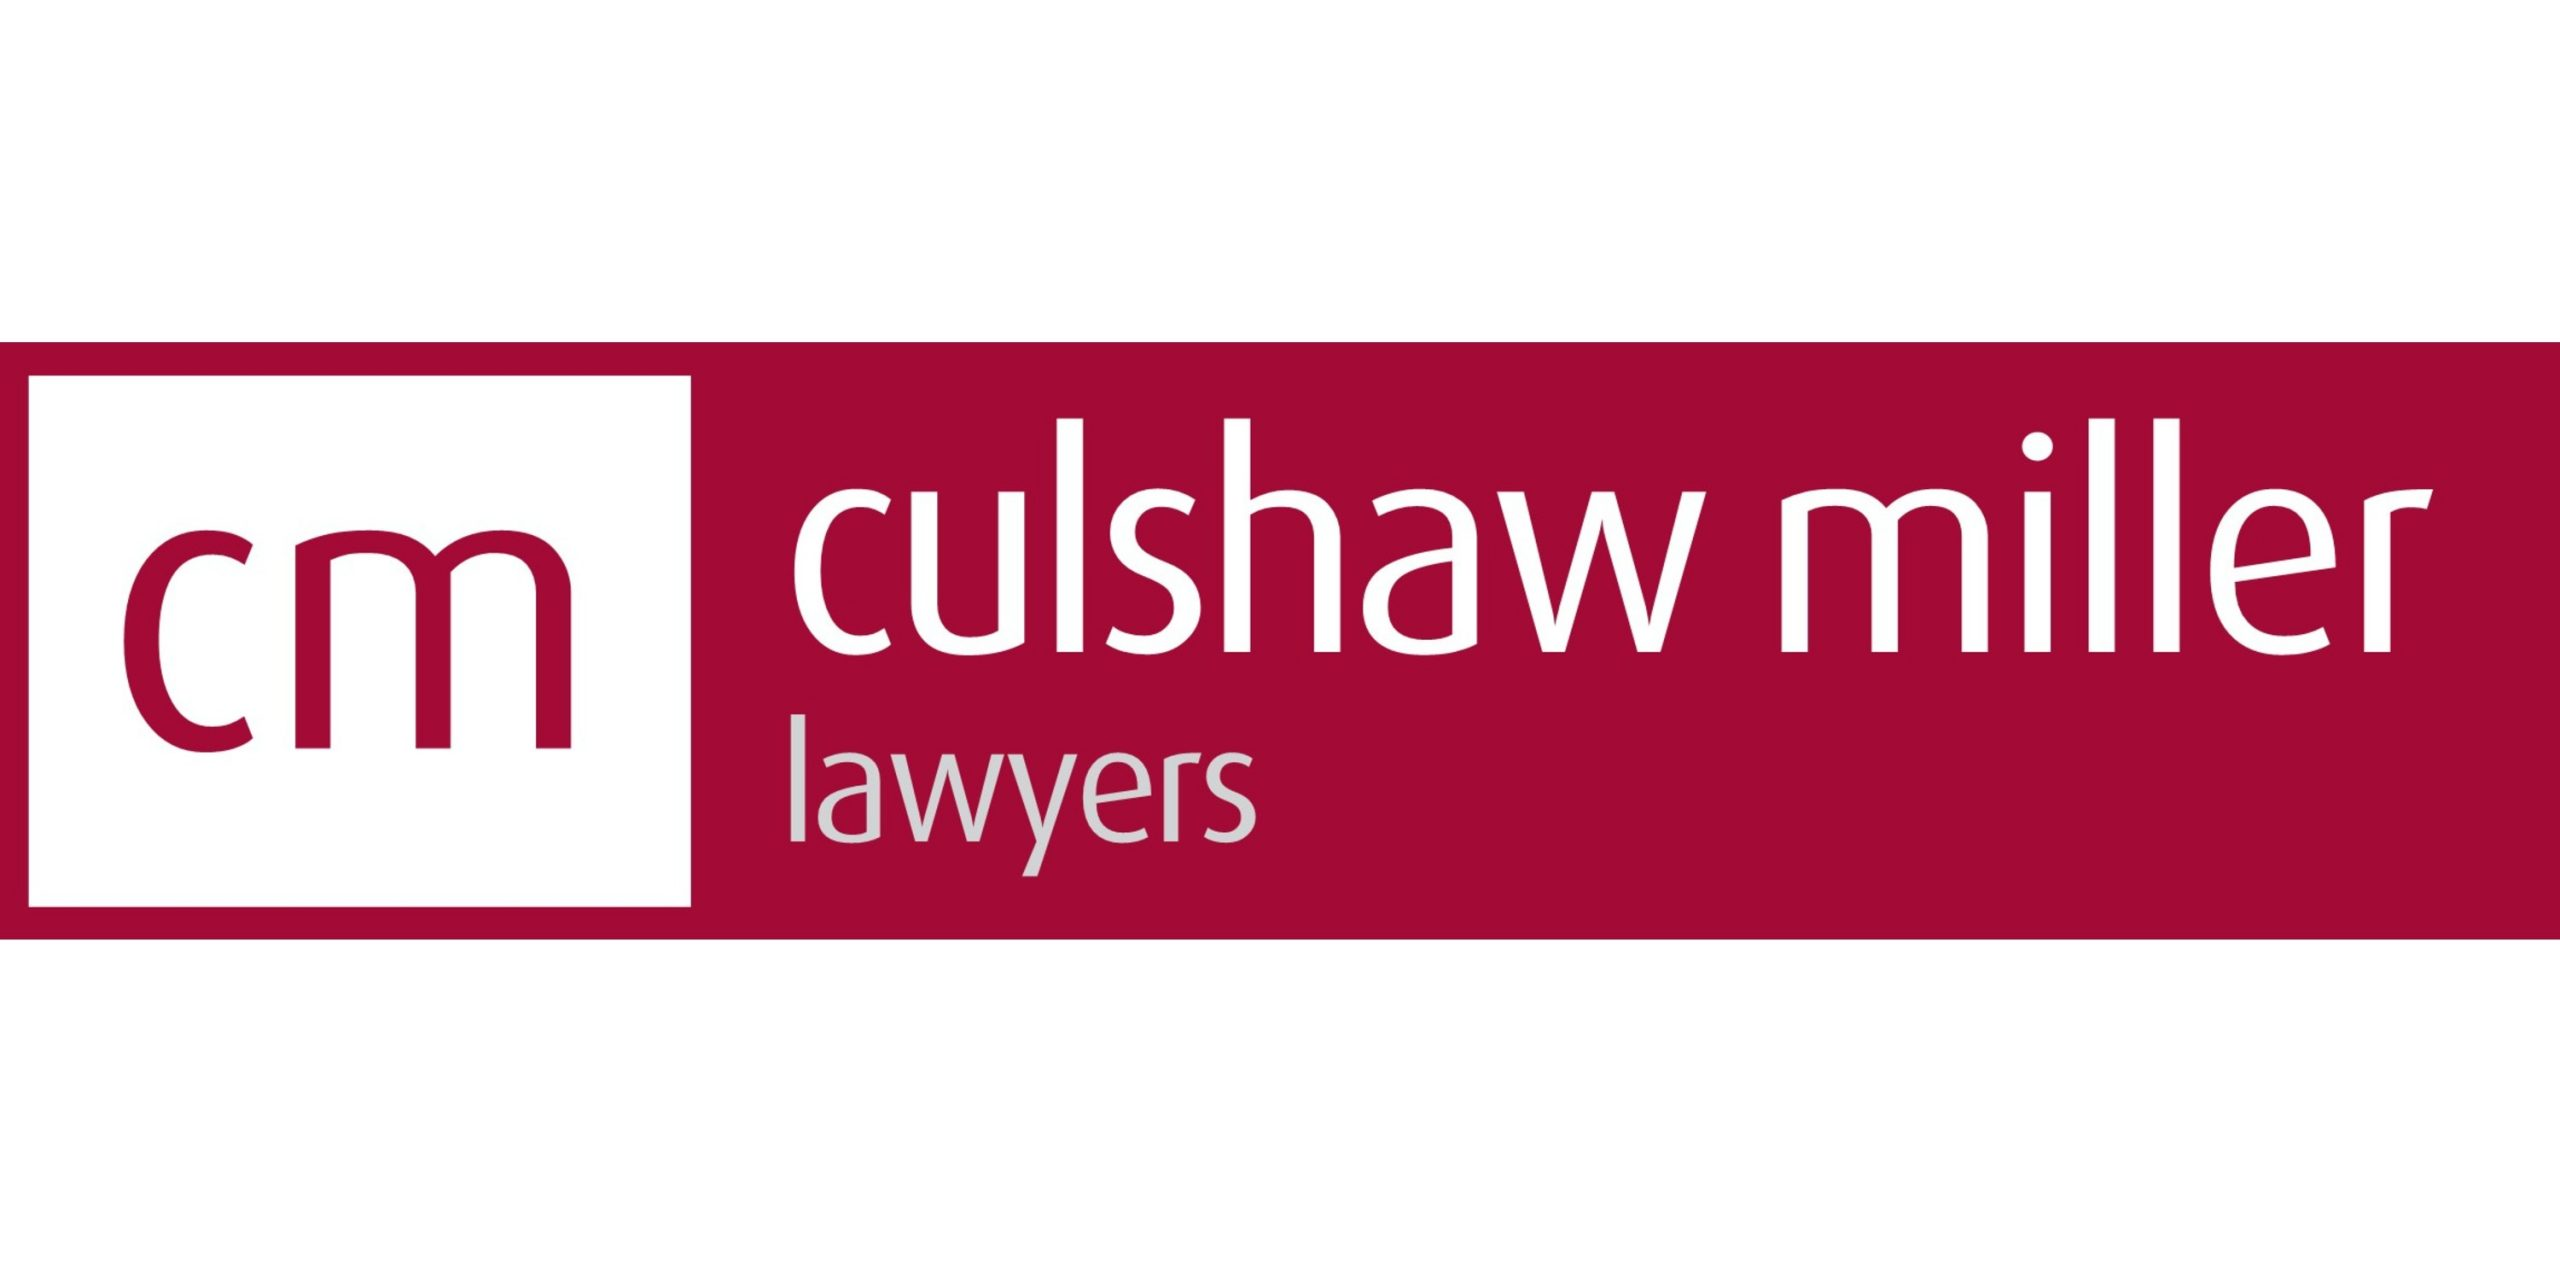 Culshaw Miller Lawyers